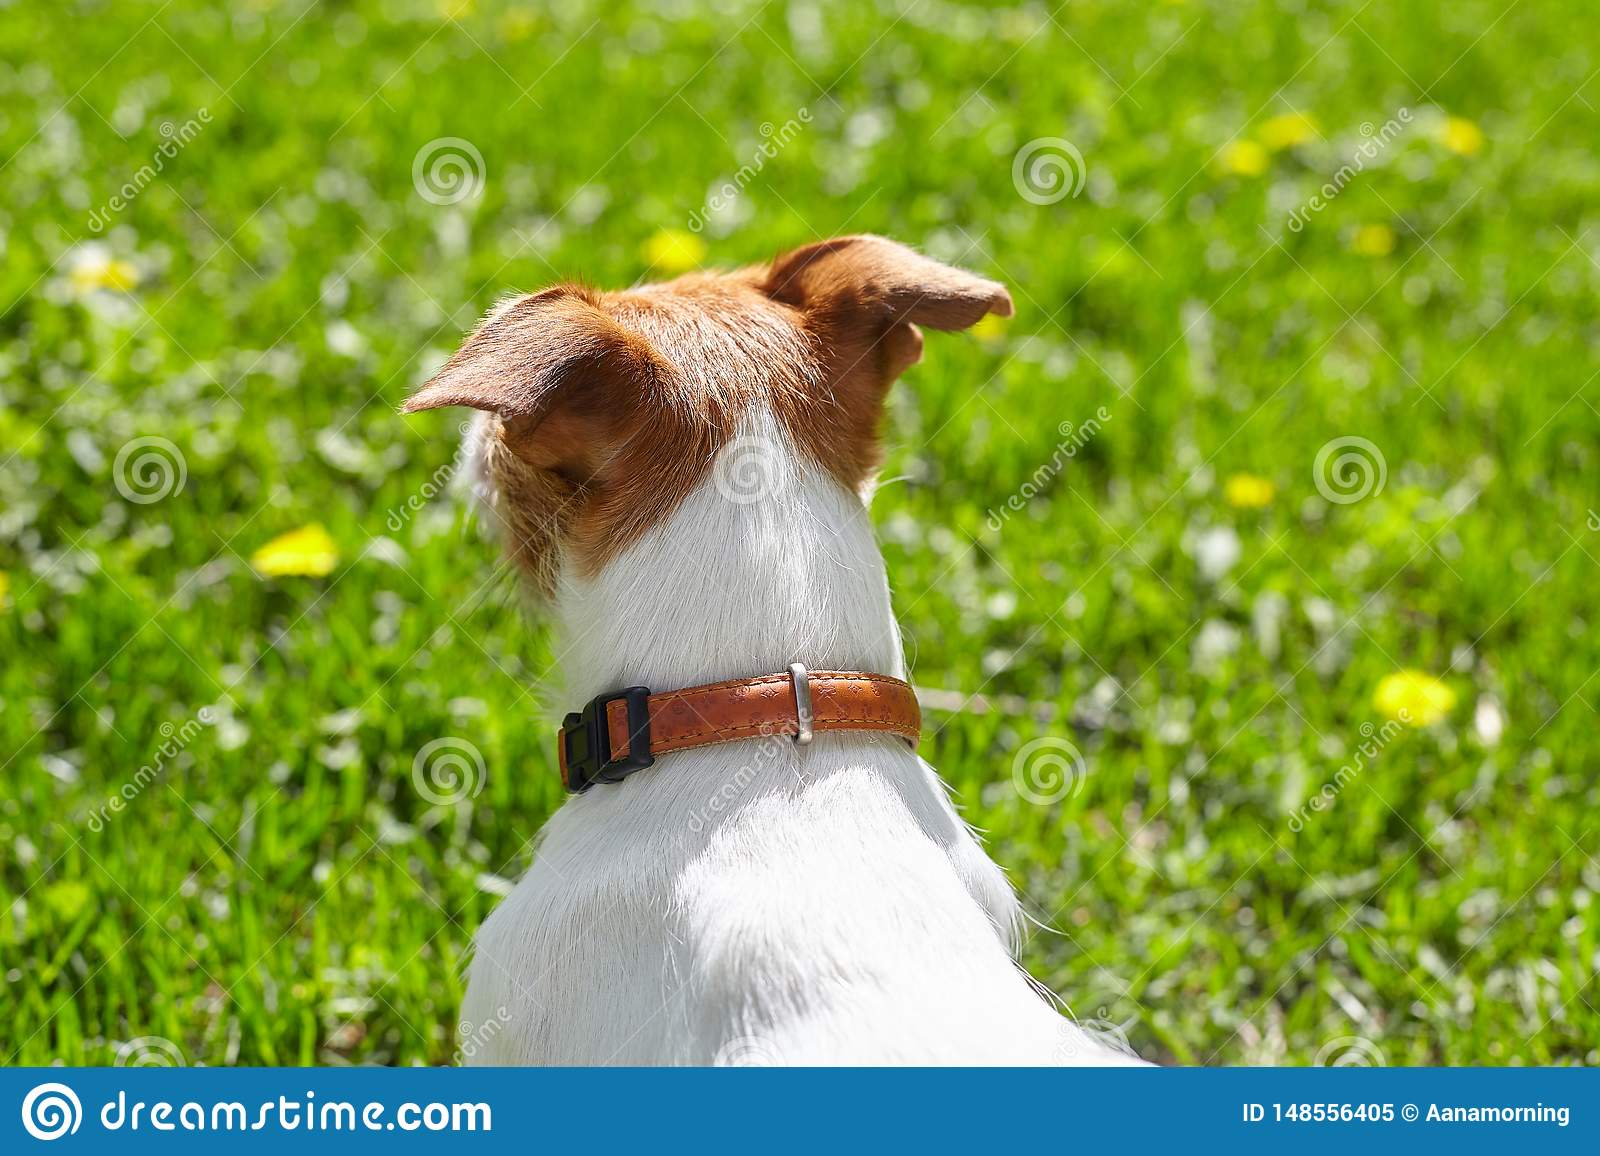 Cute Jack Russell Terrier pet dog looking at the green lawn on a sunny summer day